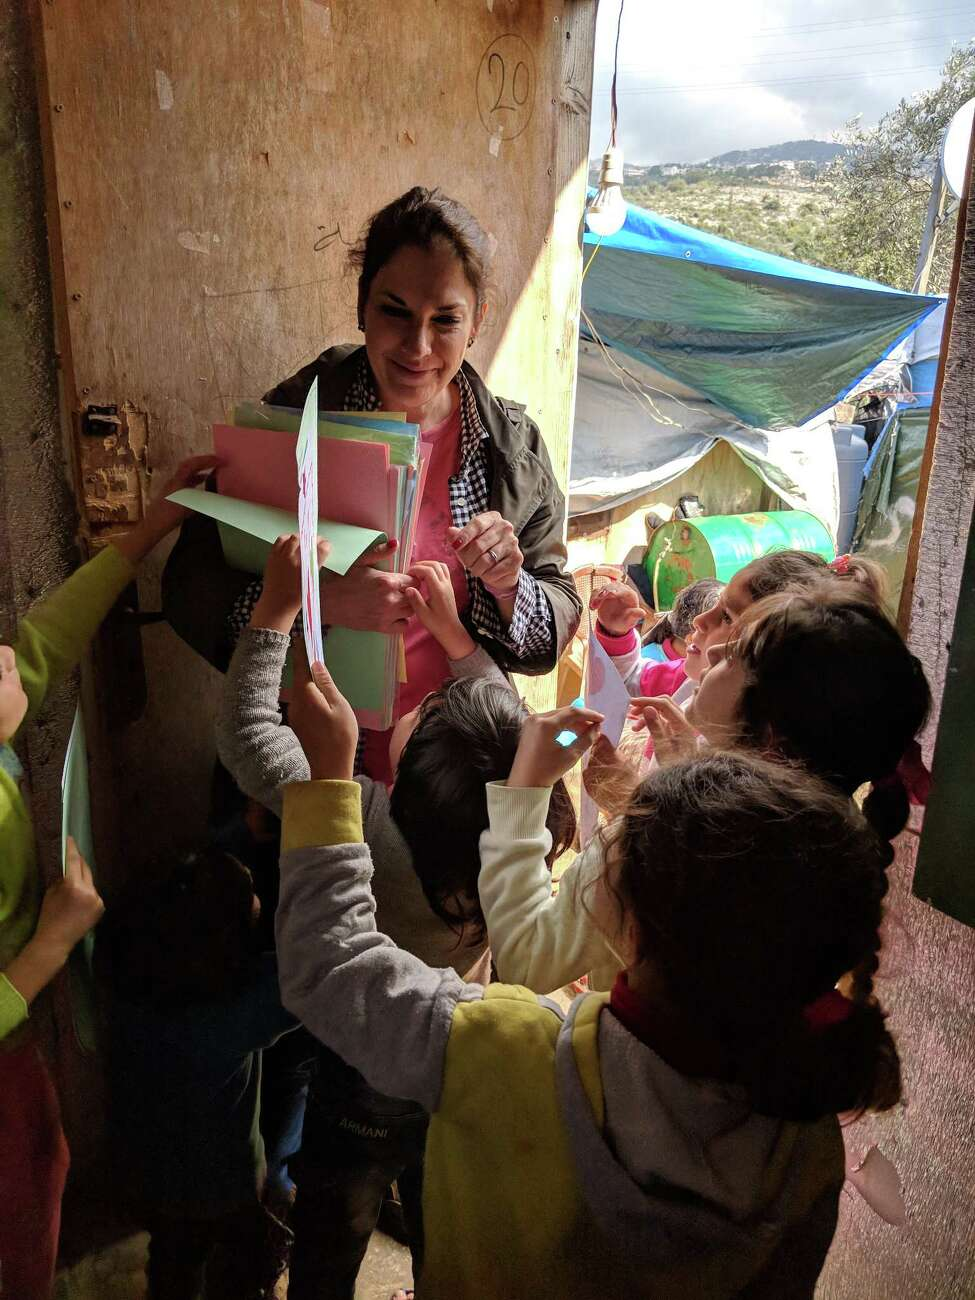 Danette Gorman distributes letters written by students of the Hudson City School District to Syrian children at the Ketermaya Refugee Camp. (Photo courtesy of Danette Gorman)